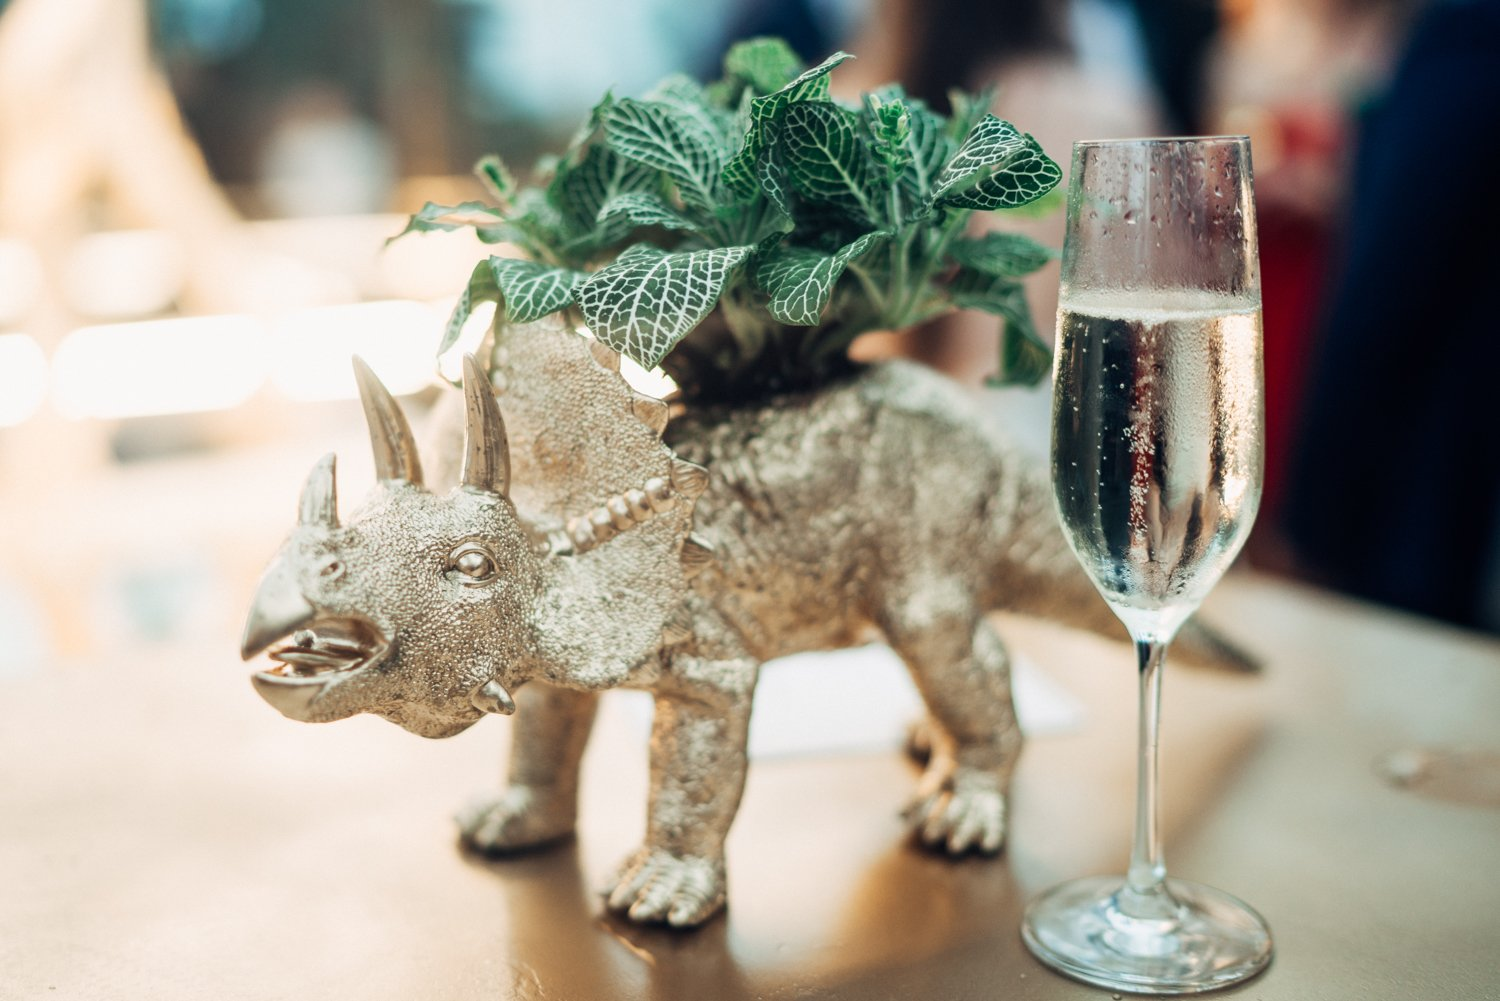 Gold stegosaurus cocktail hour at faena miami beach, fl